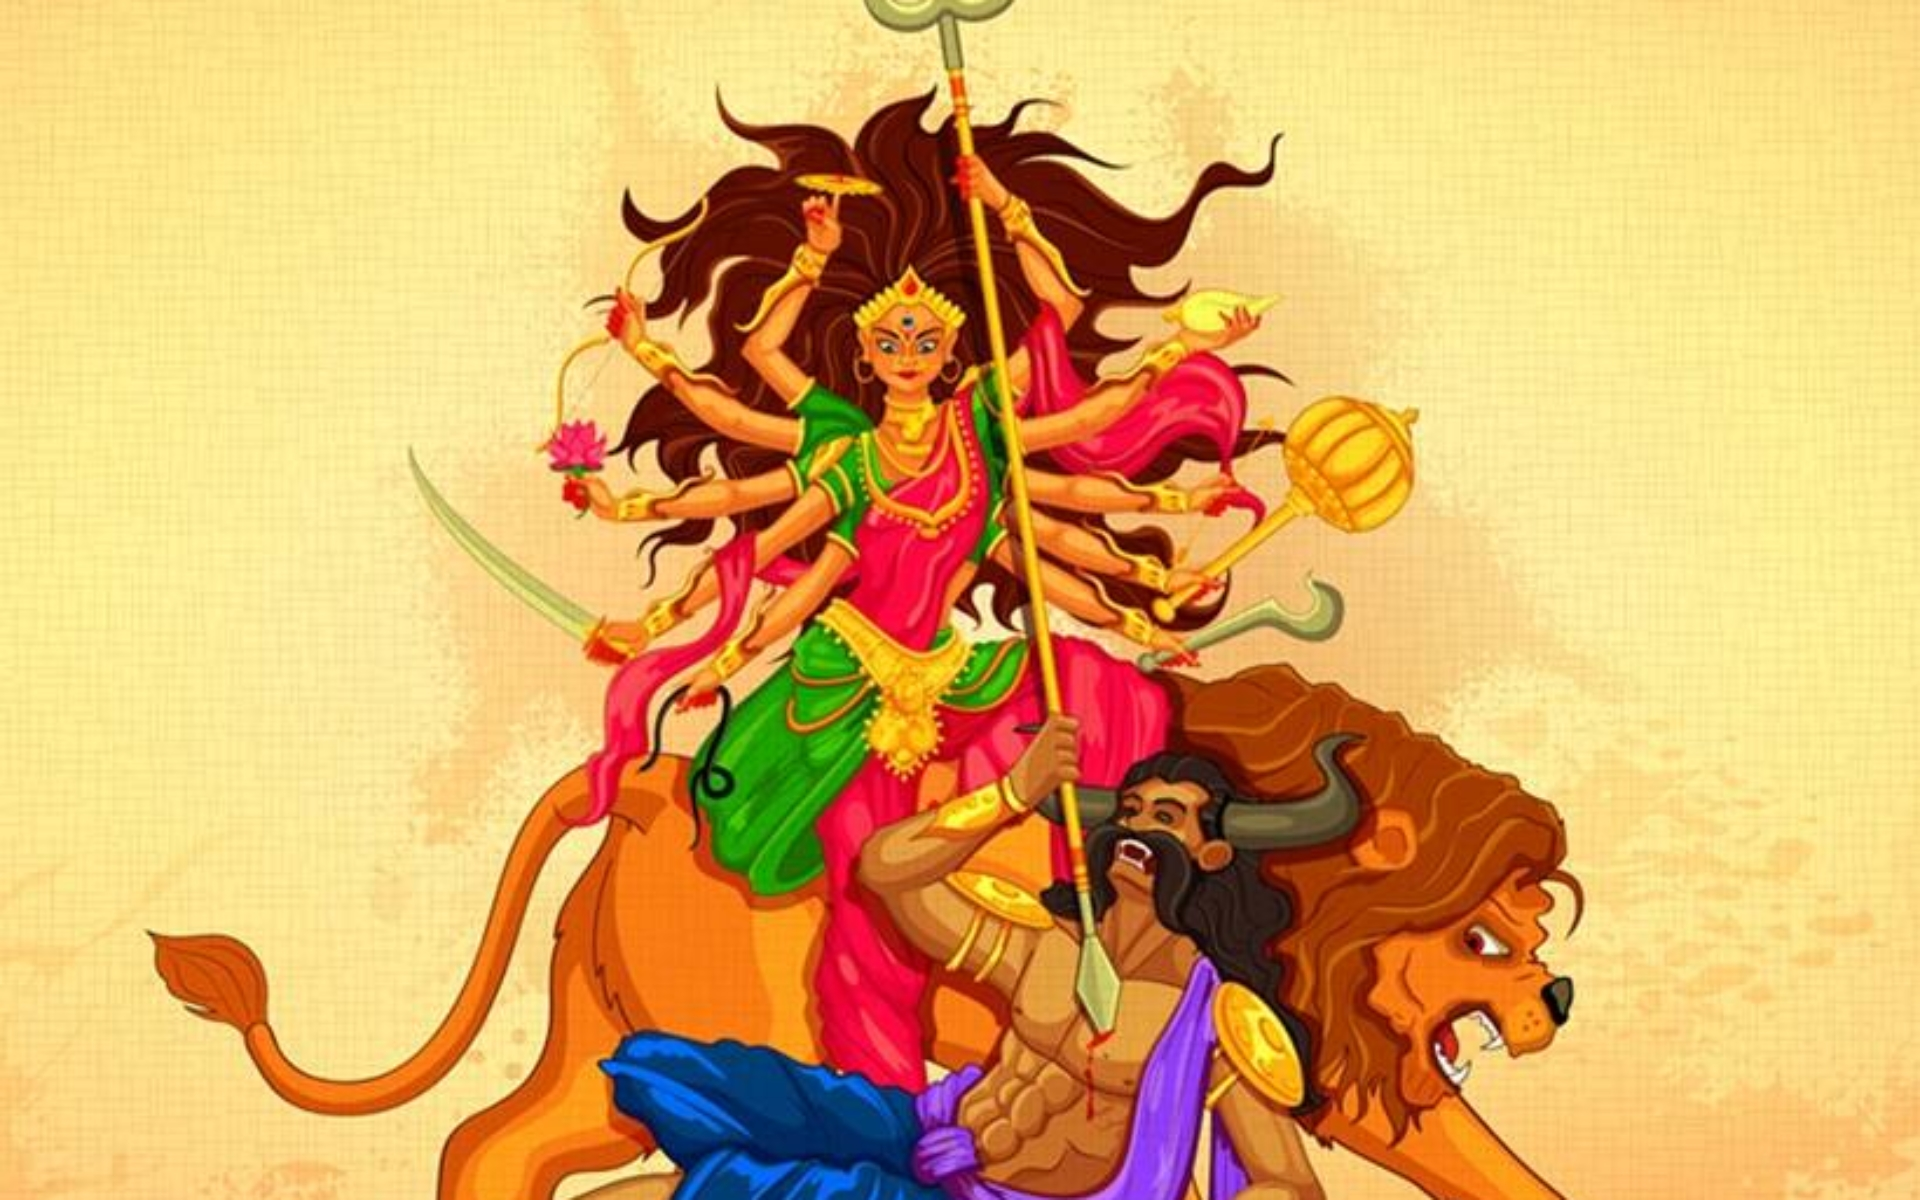 Why Goddess Durga Slayed Mahishasura In This Precise Manner Not Many Know